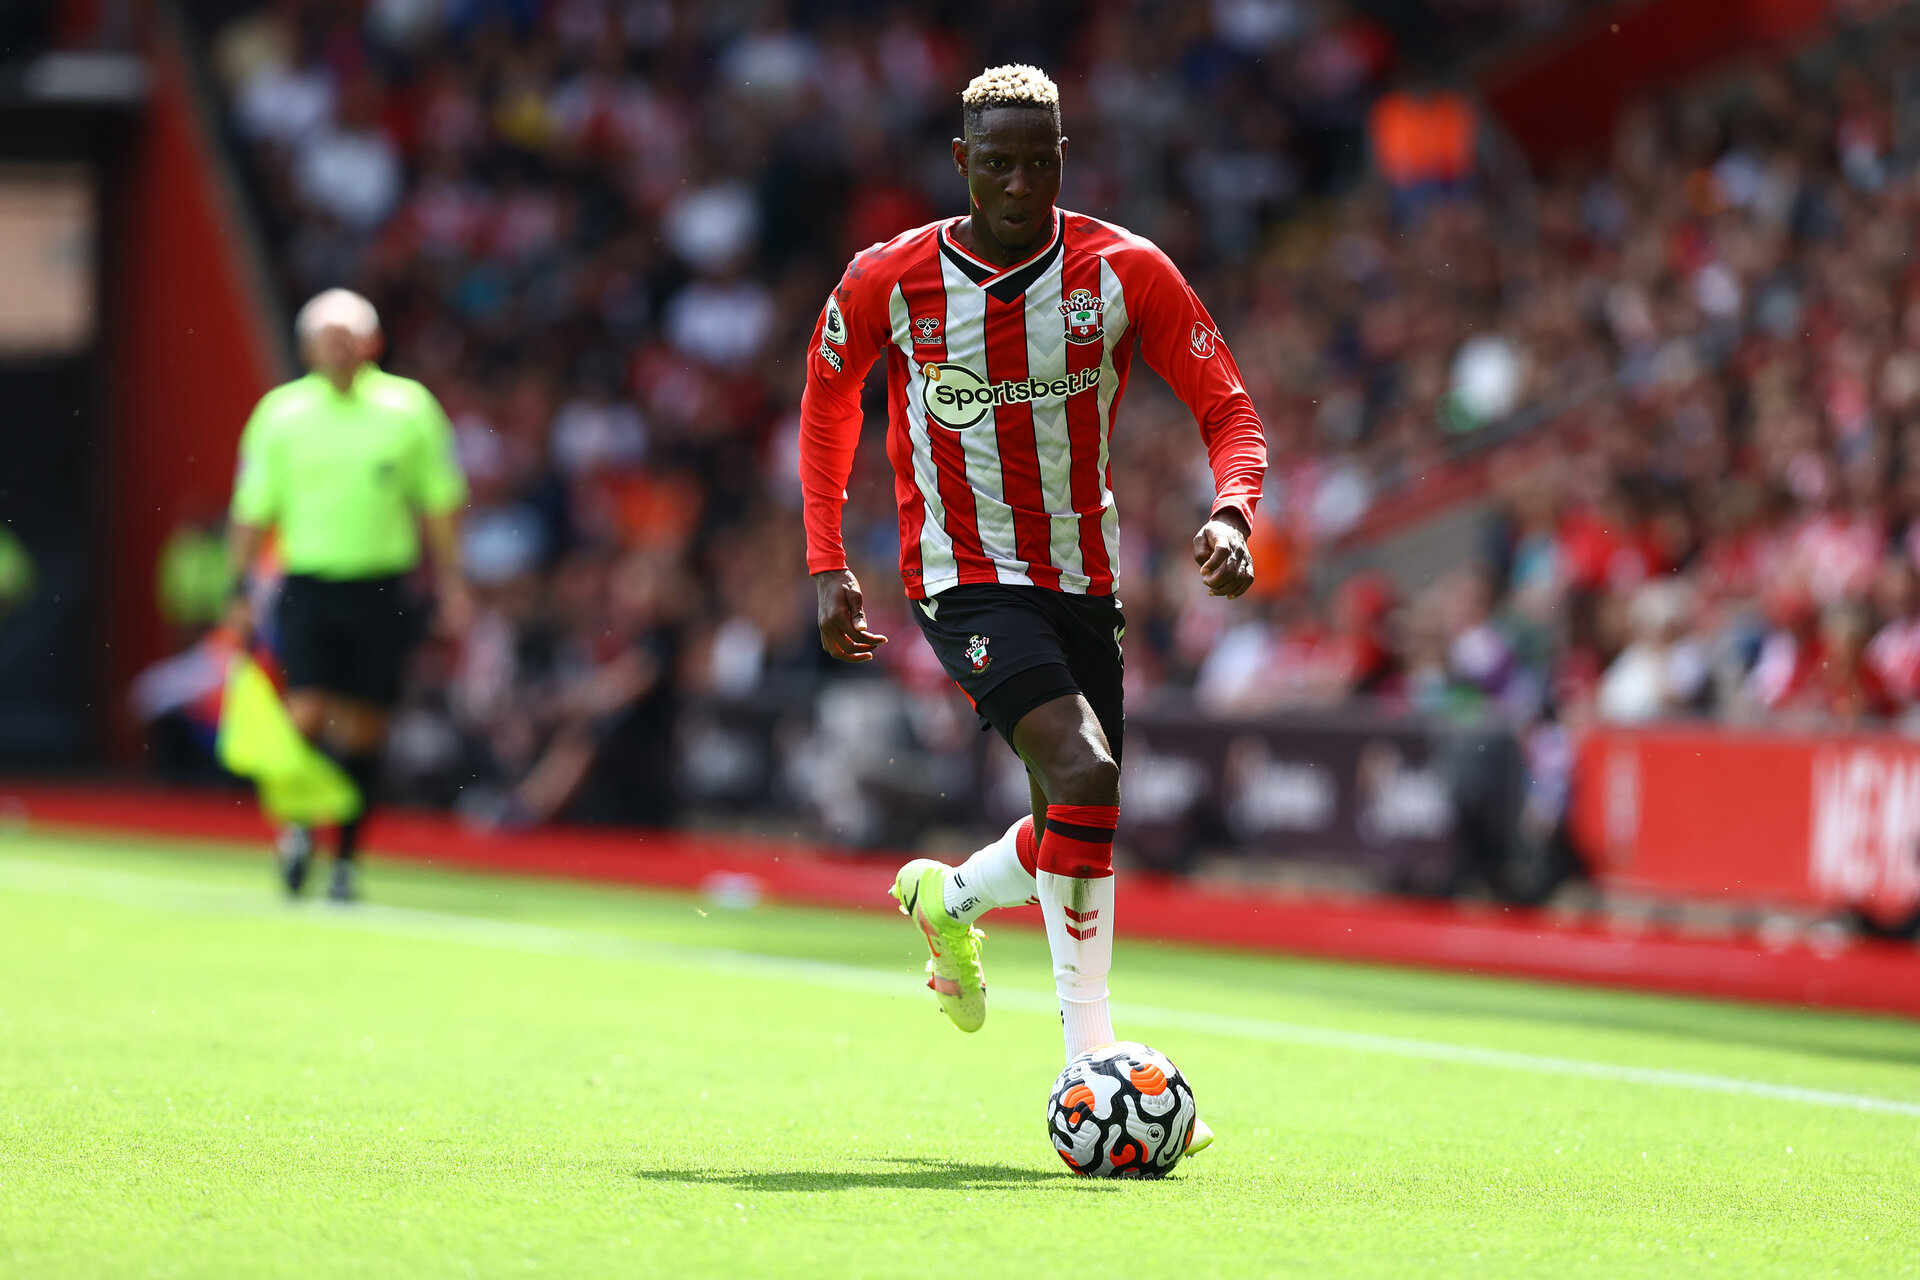 SOUTHAMPTON, ENGLAND - AUGUST 22: Moussa Djenepo of Southampton during the Premier League match between Southampton  and  Manchester United at St Mary's Stadium on August 22, 2021 in Southampton, England. (Photo by Matt Watson/Southampton FC via Getty Images)